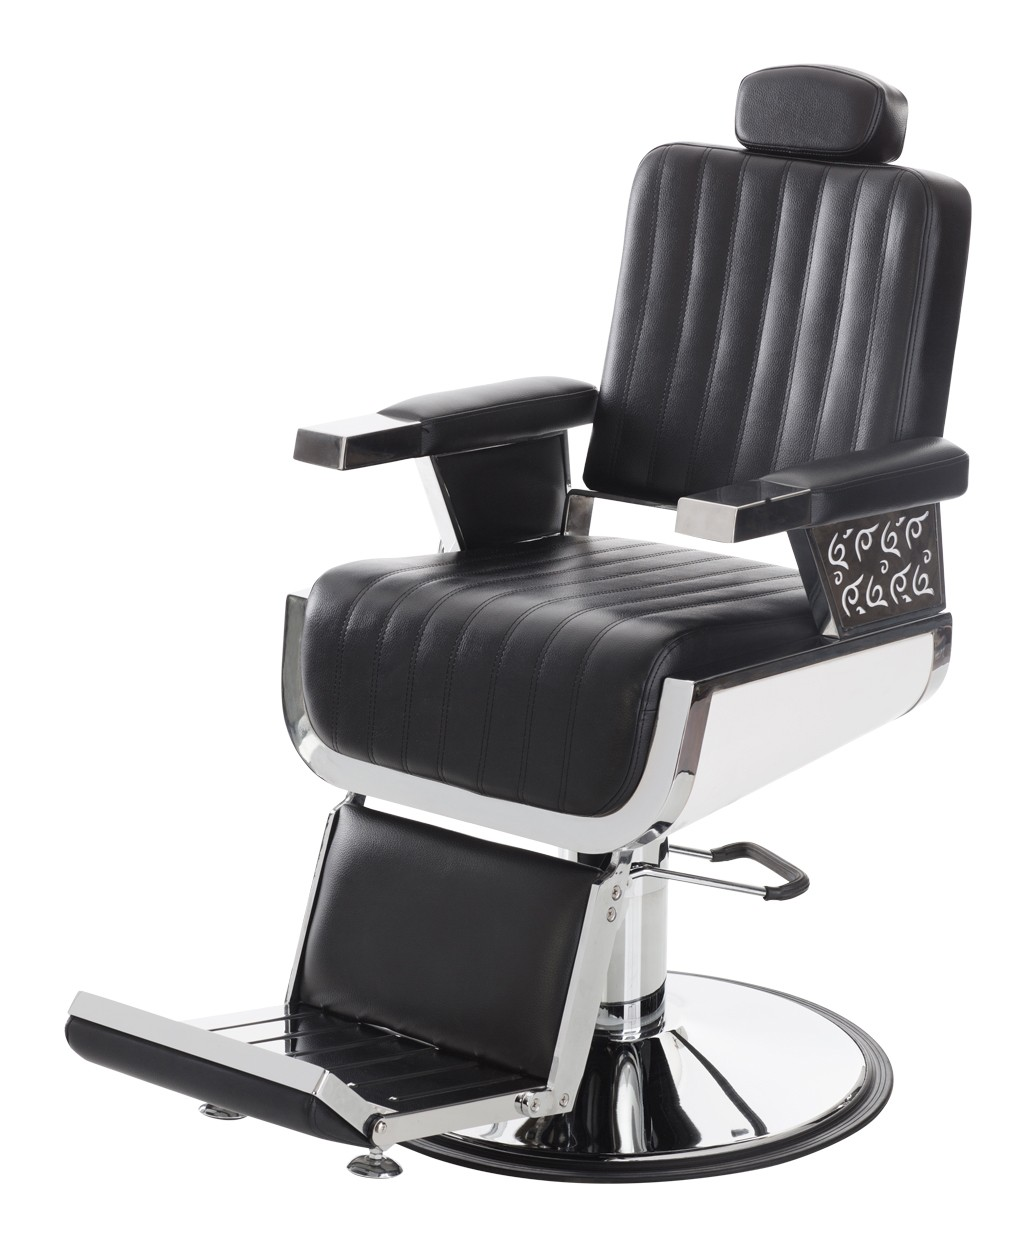 wholesale, heavy-duty professional barber shop chairs